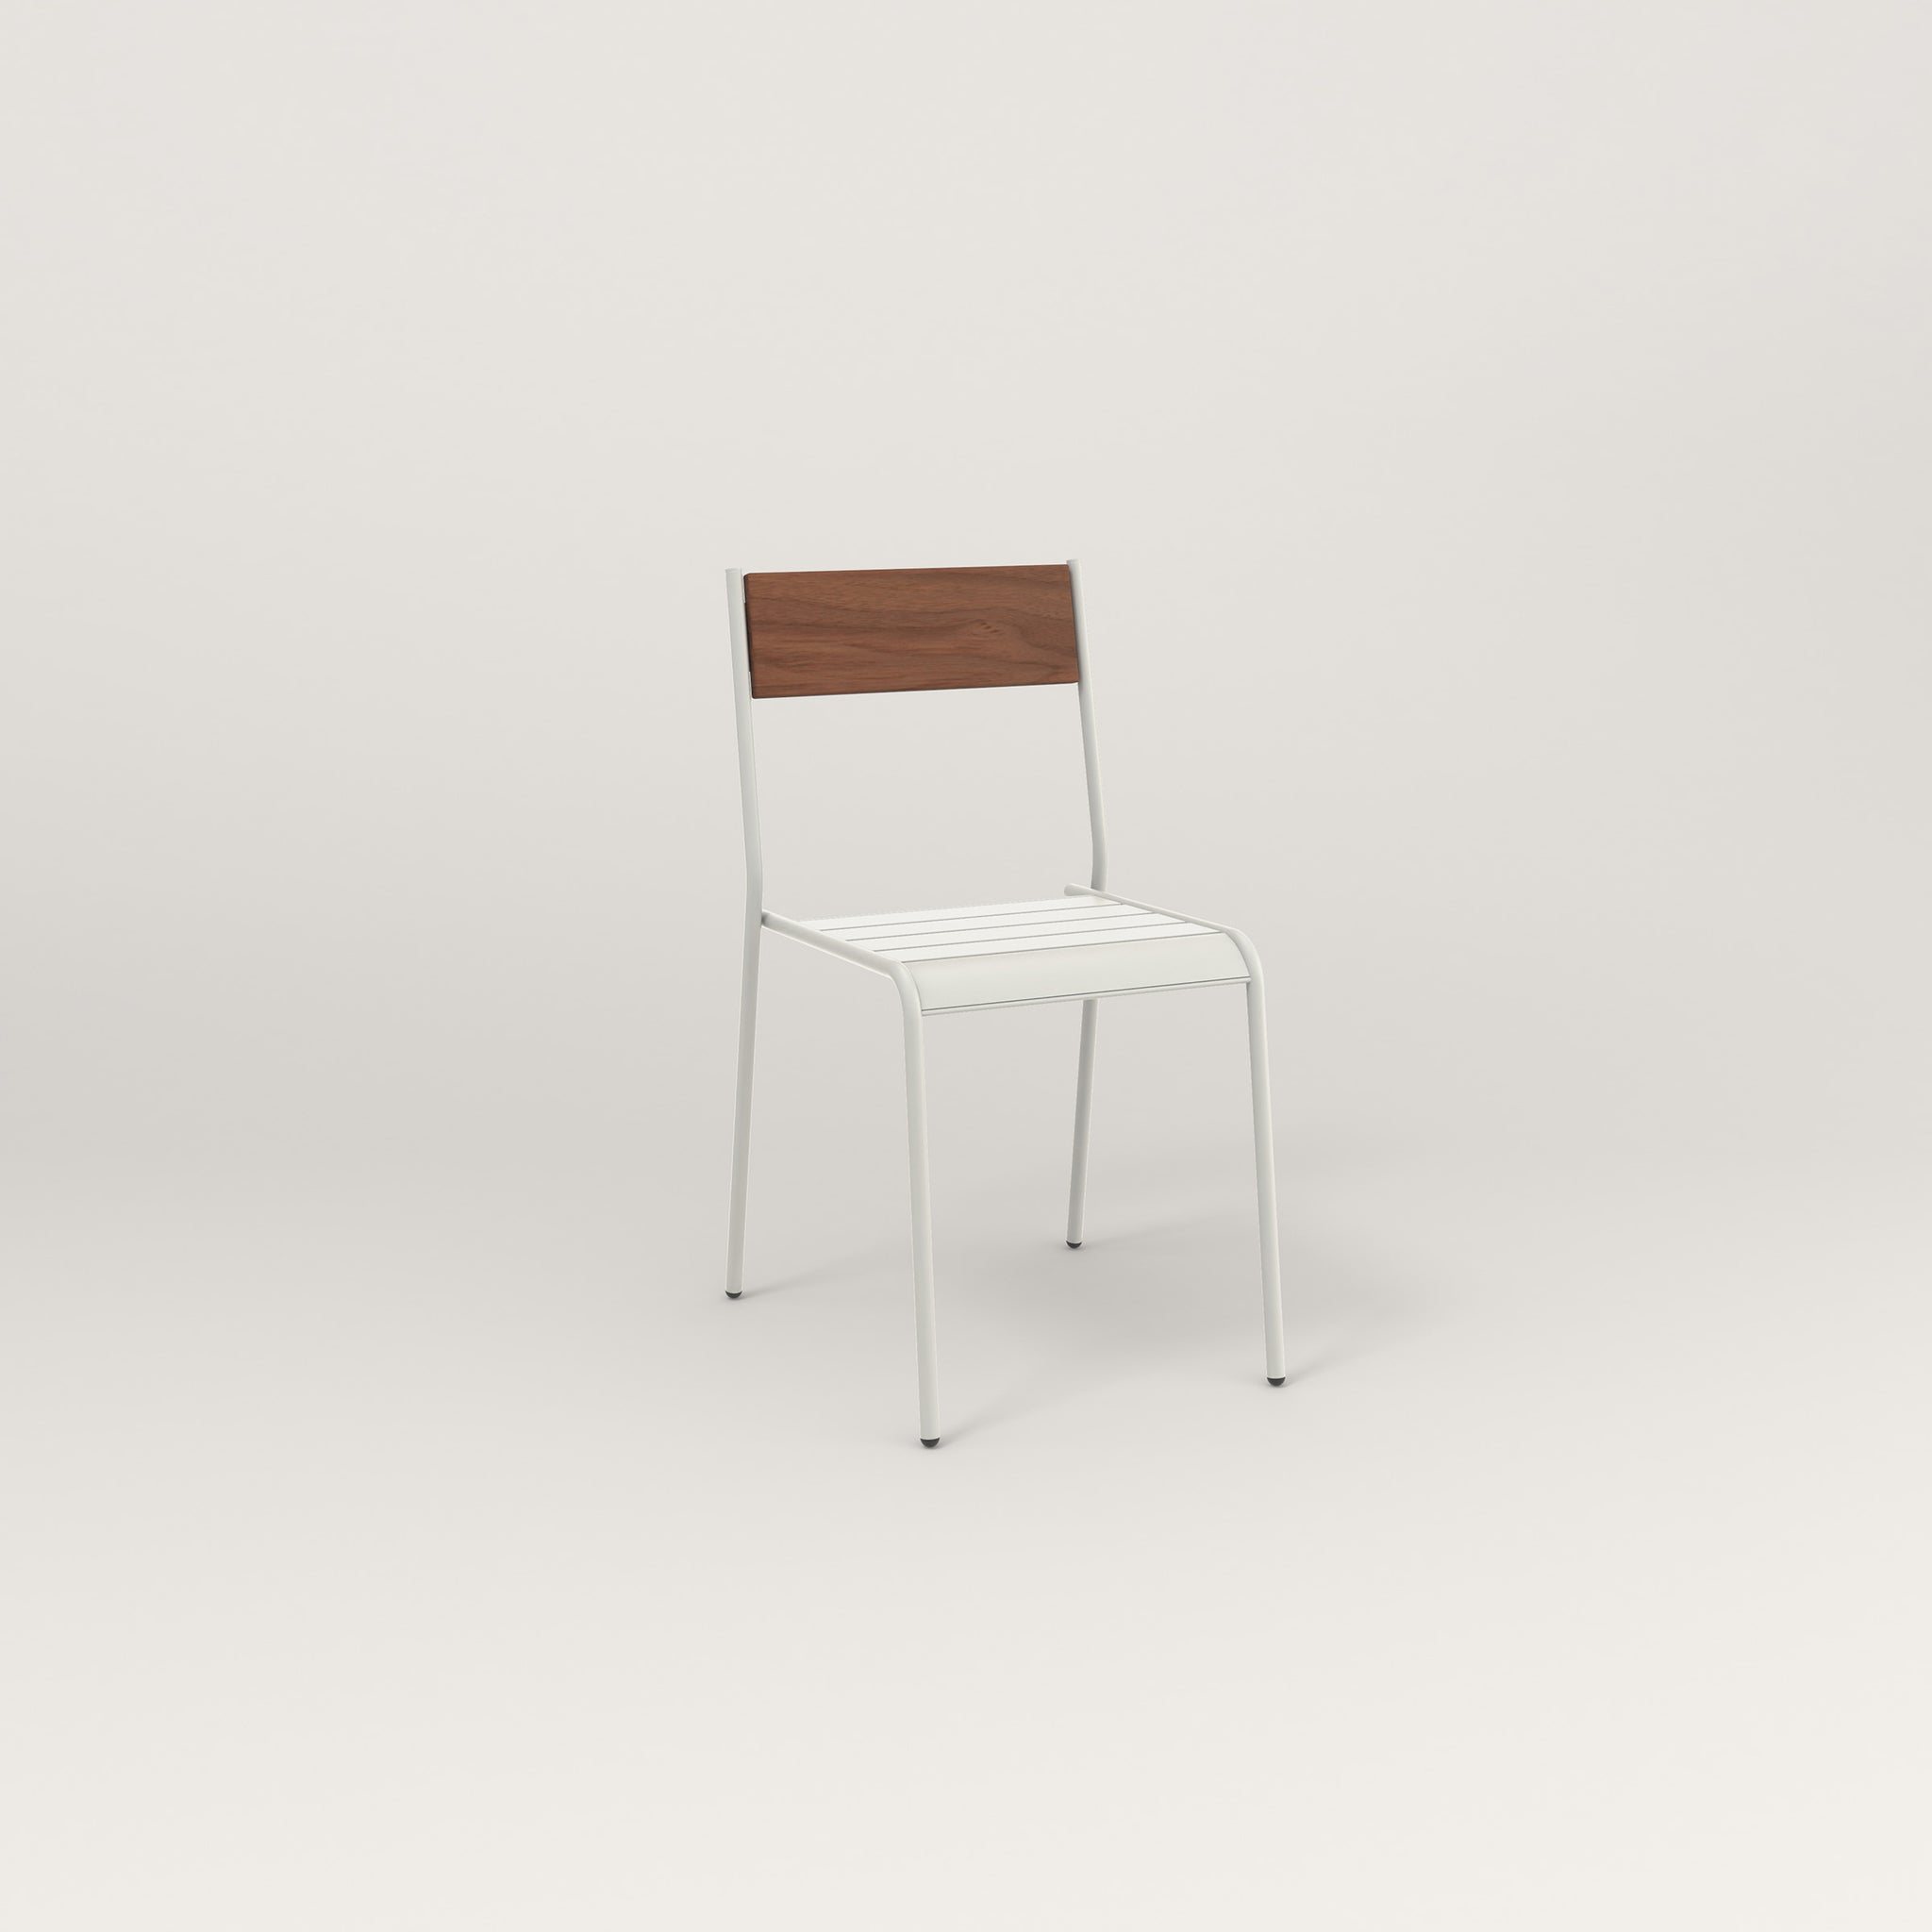 RAD Signature Dining Chair in slatted wood and white powder coat.